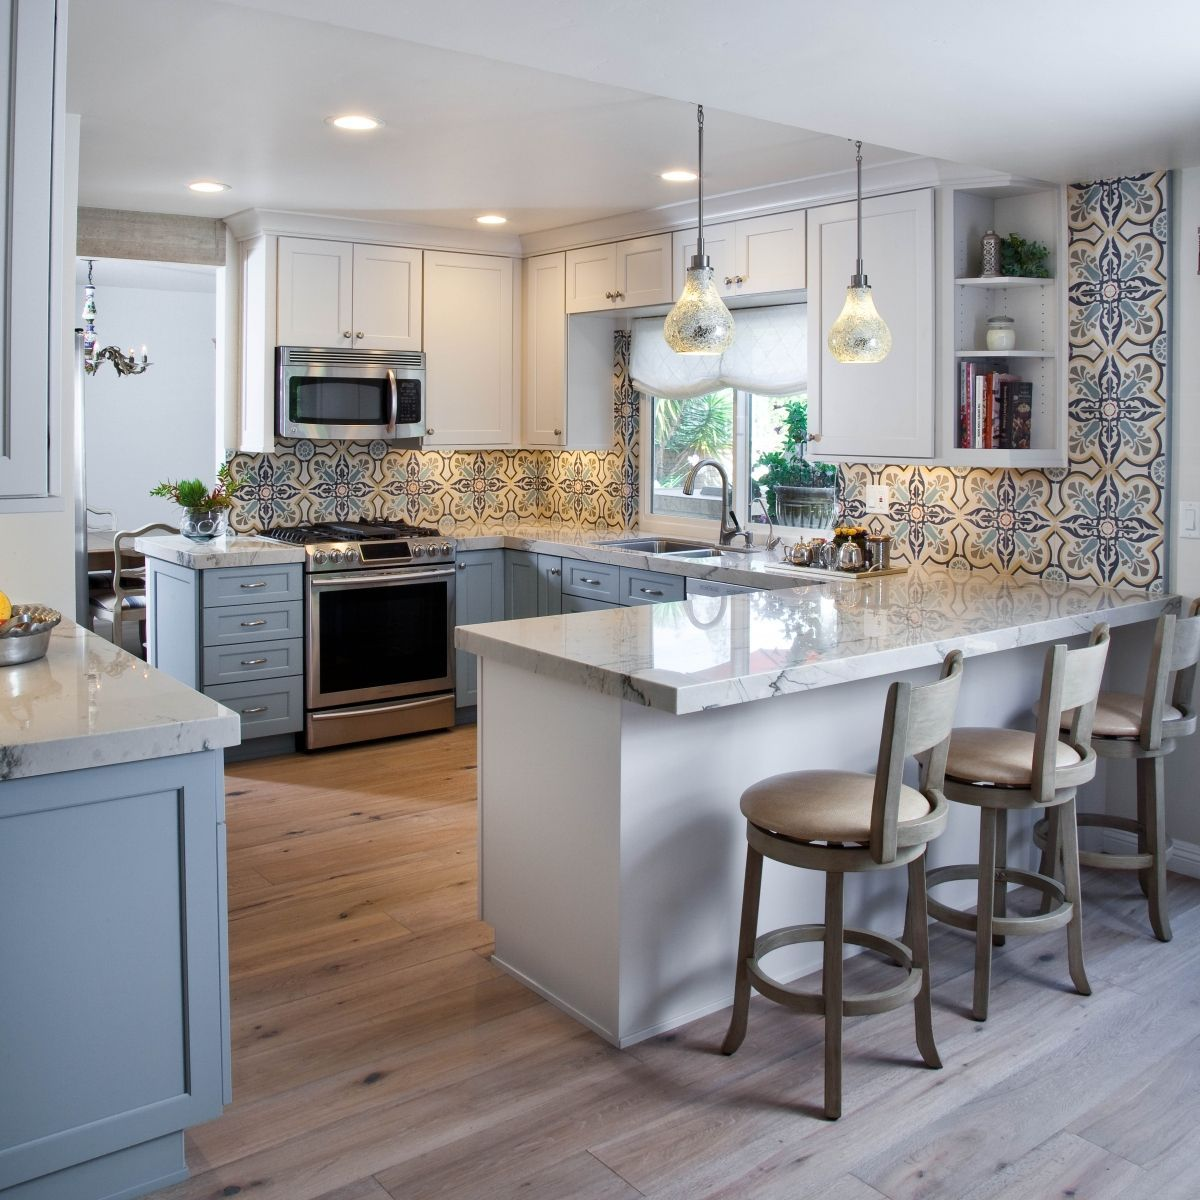 17+ Hot Kitchen Remodeling Ideas The Most Liked